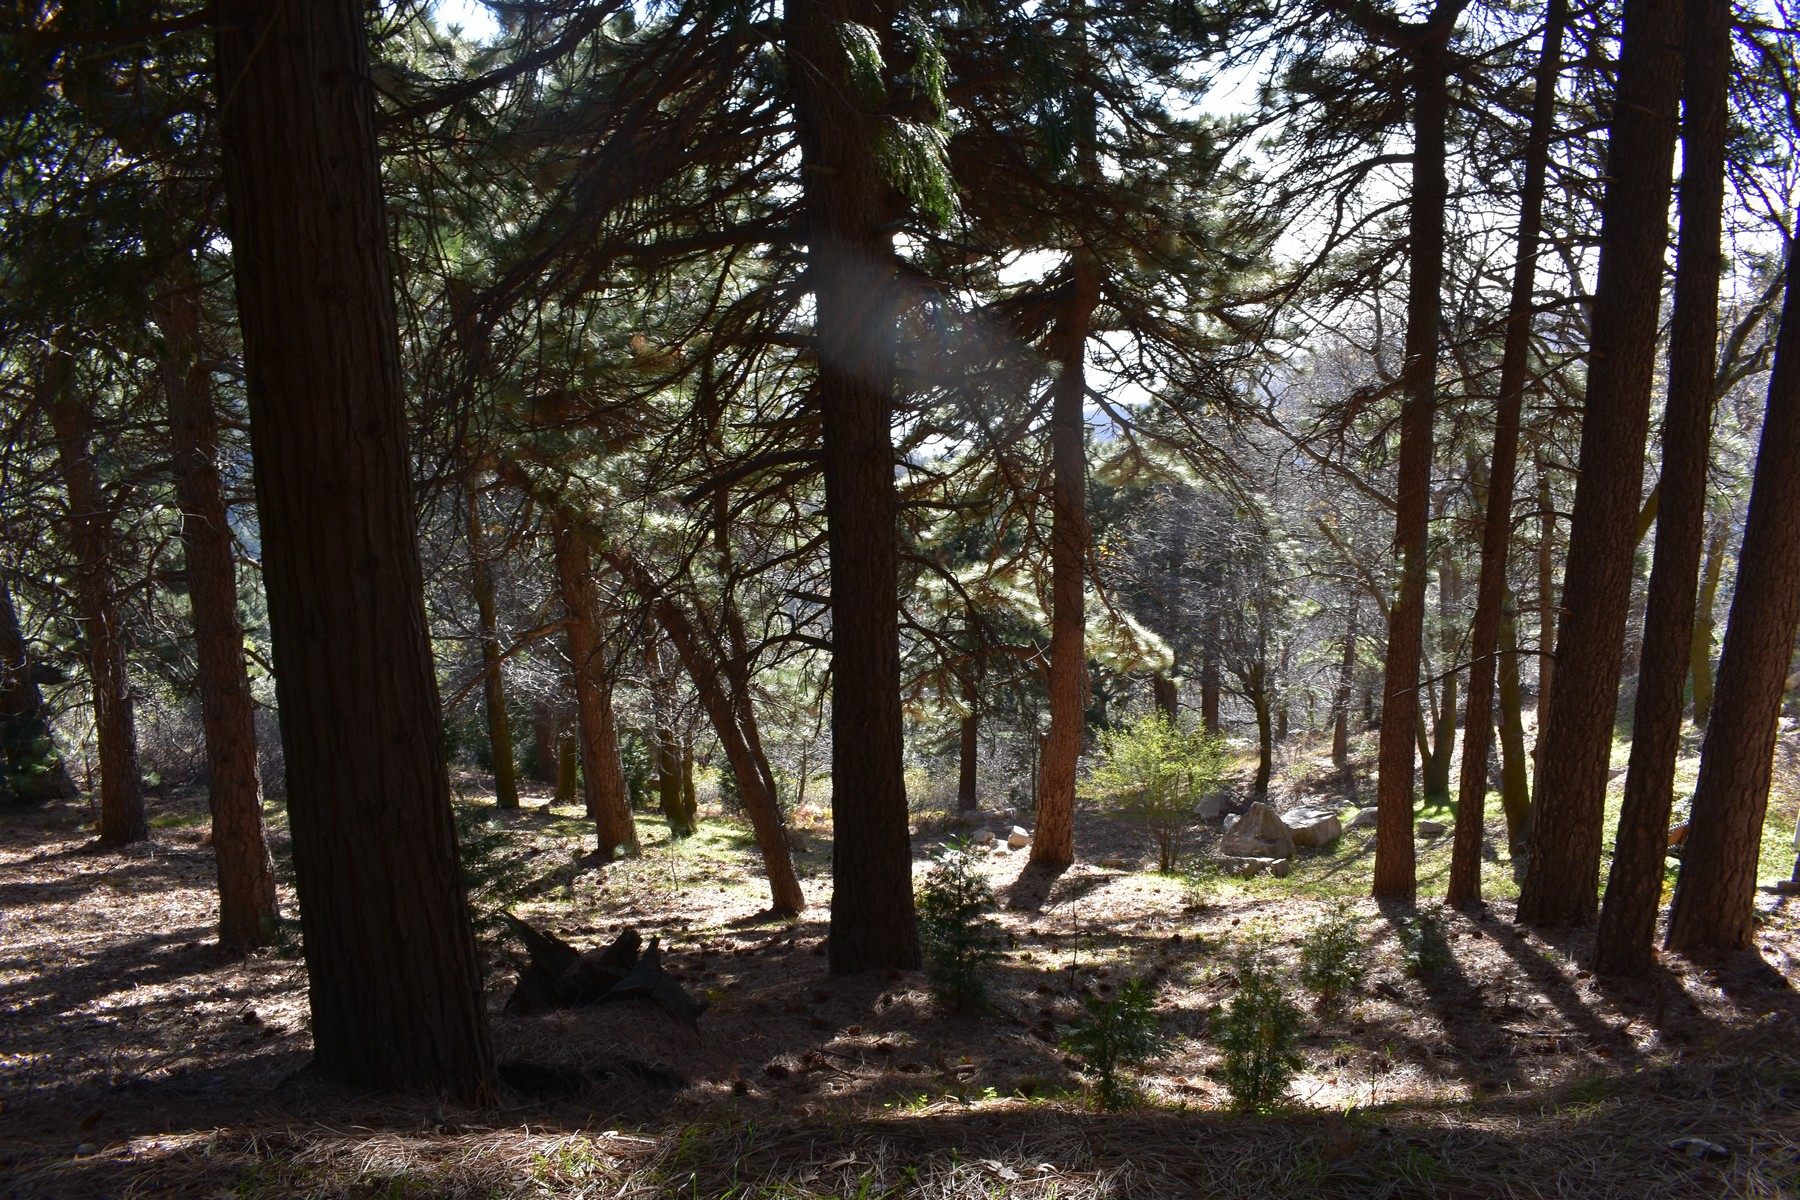 Land for Sale at Crestline Peak Circle Crestline, California 92322 United States